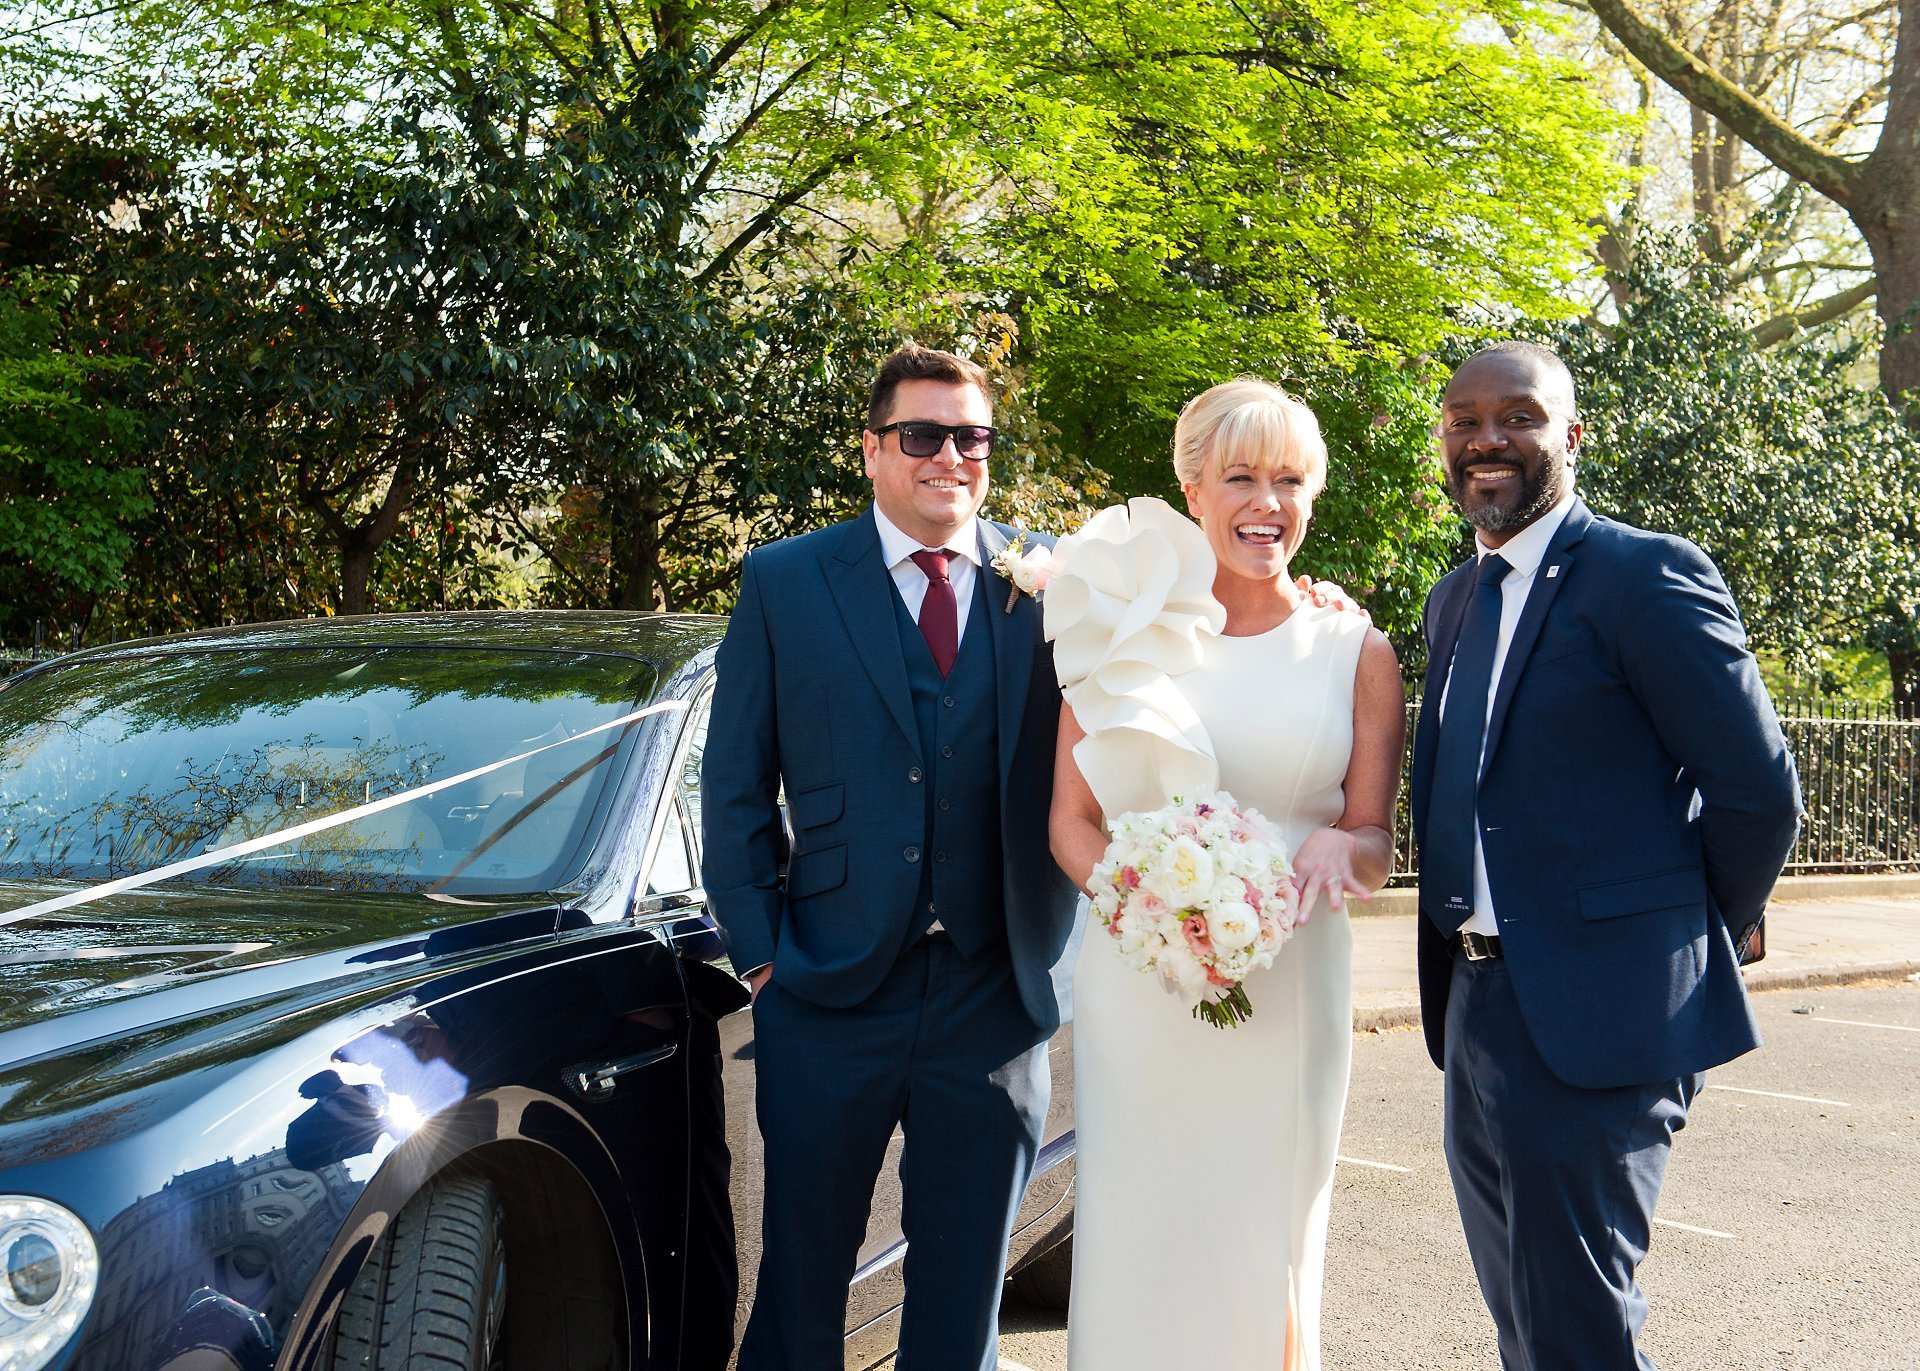 Bride & Groom with their Bentley wedding car driver on Belgrave Square, London